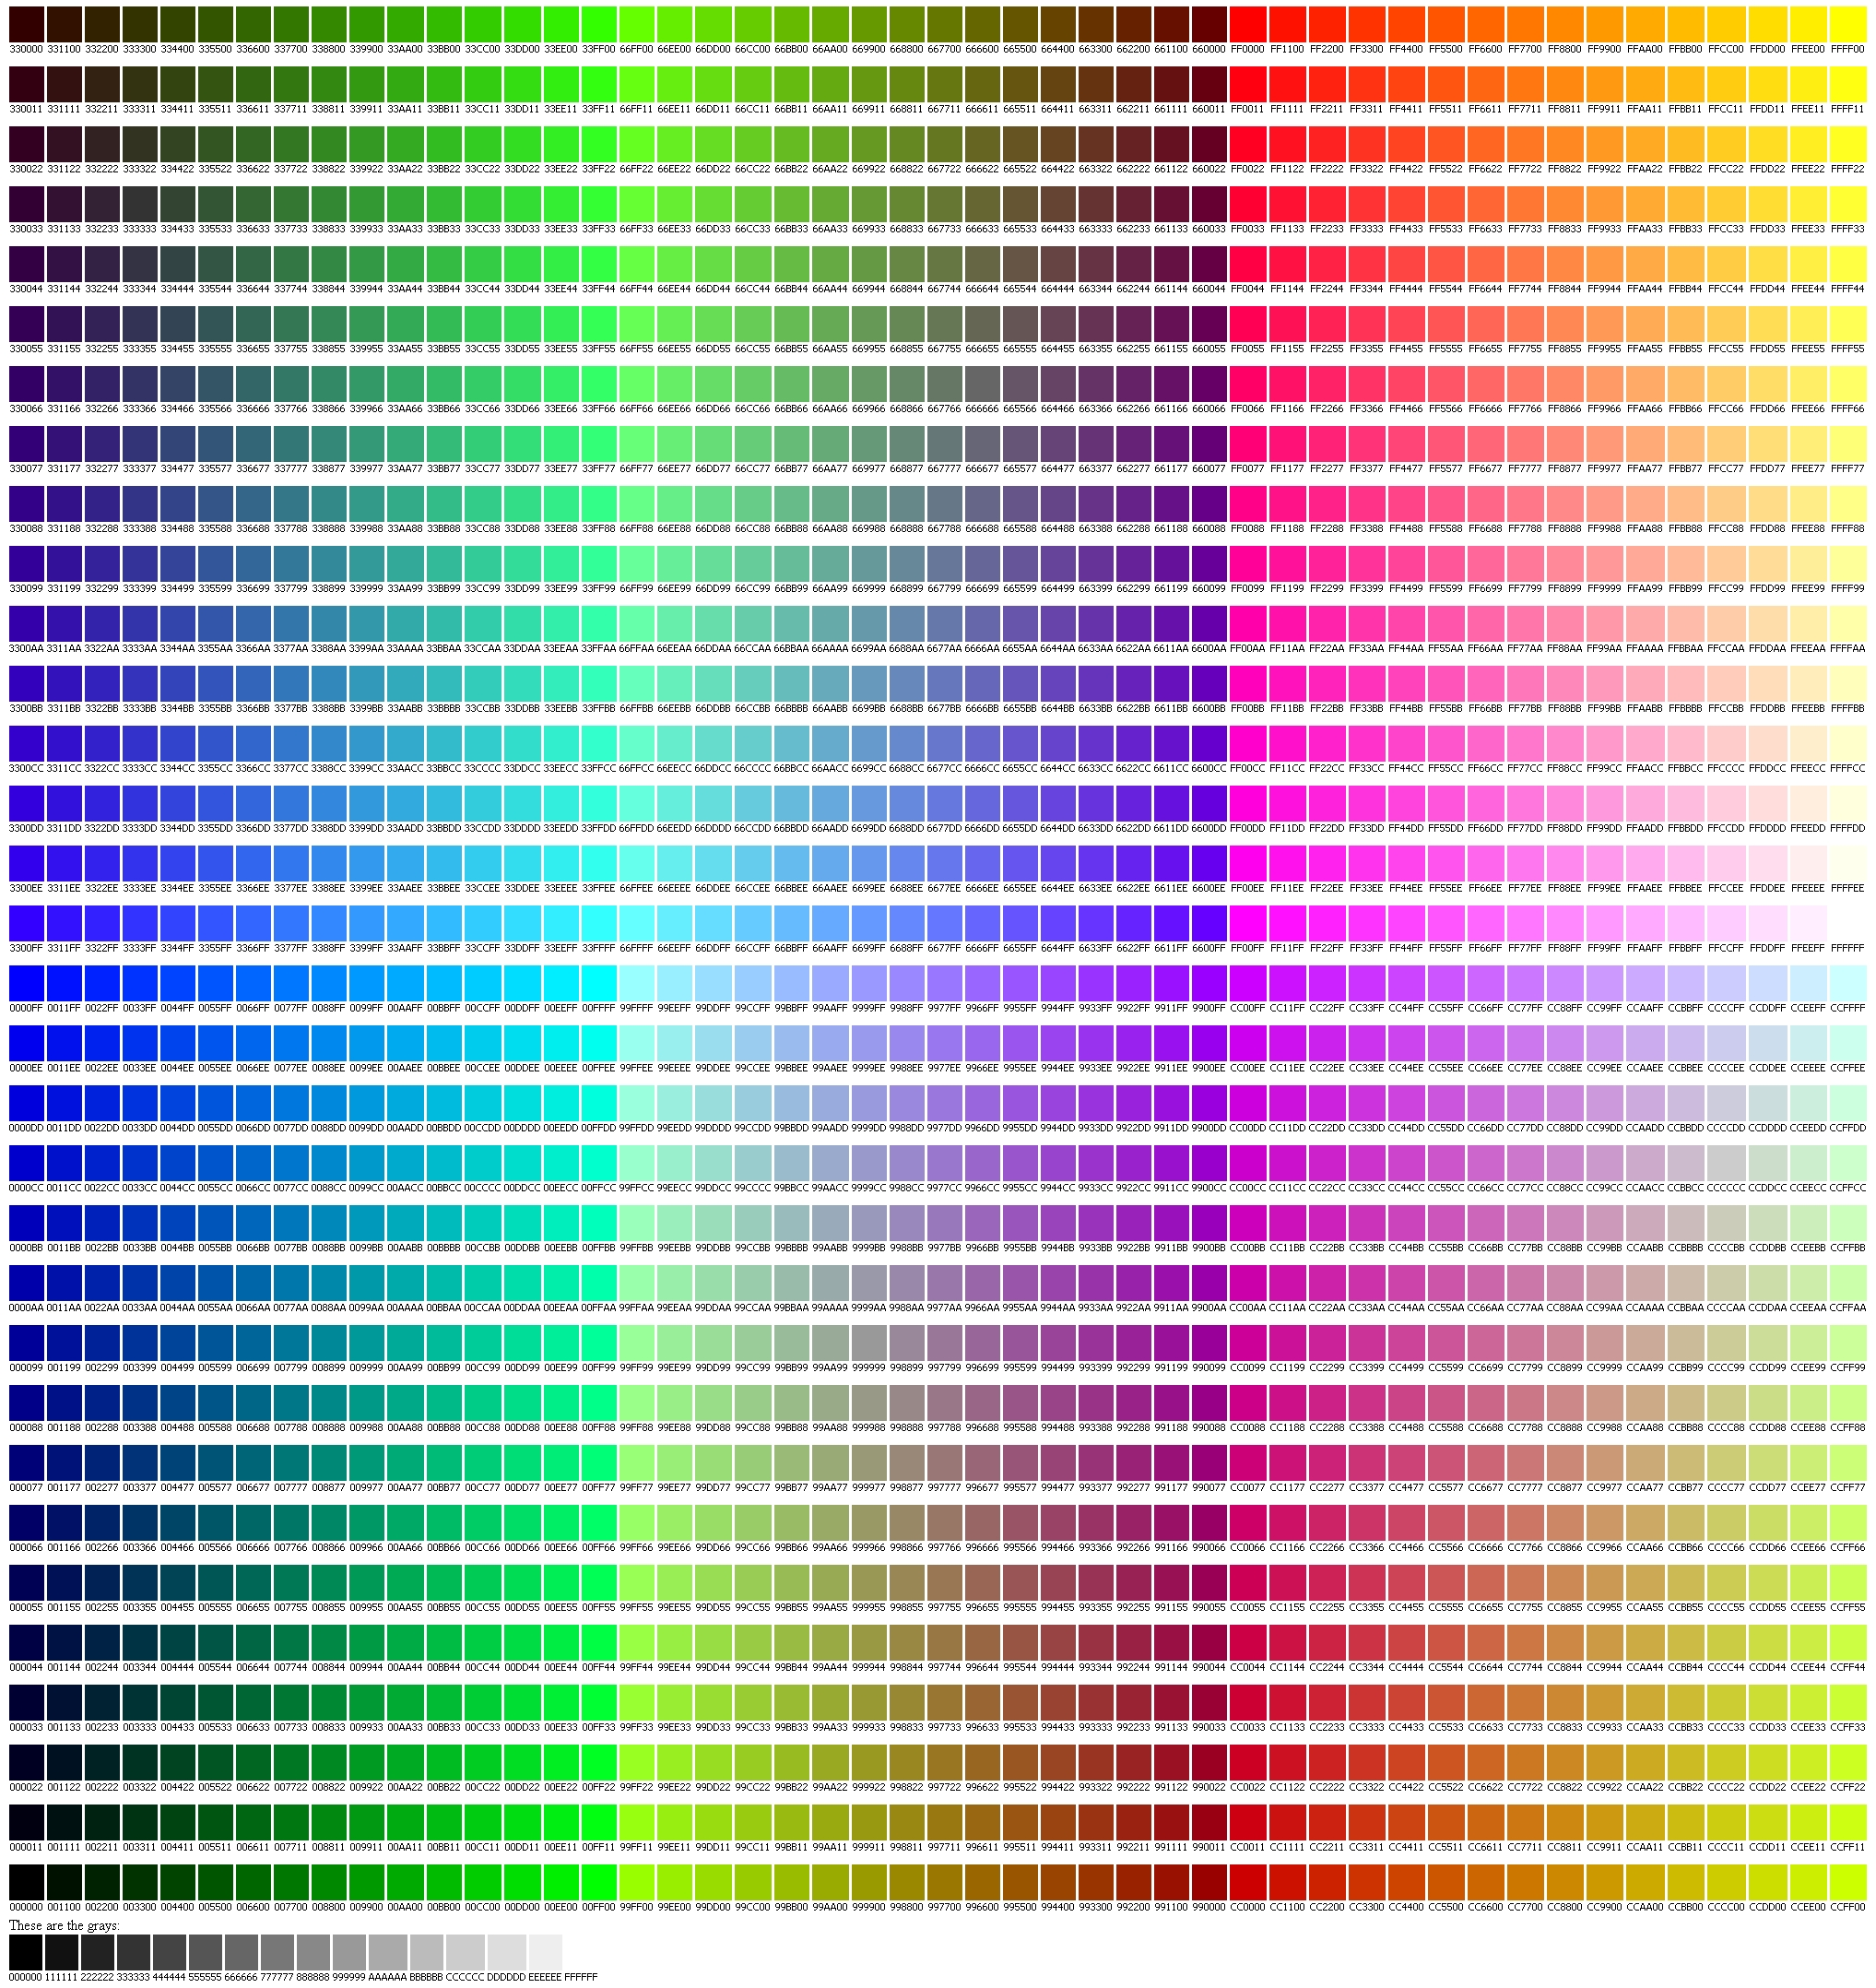 web page colors - colors